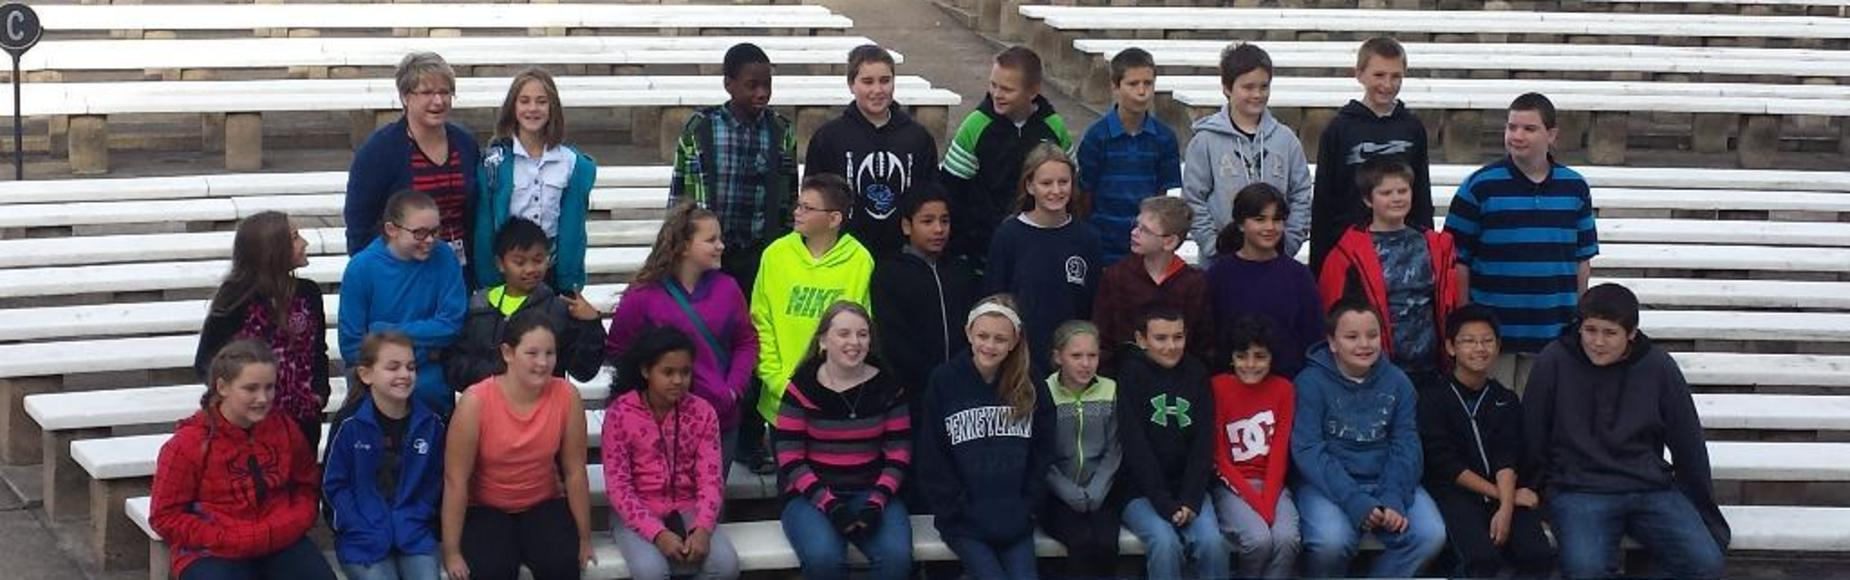 Students on Bleachers Picture